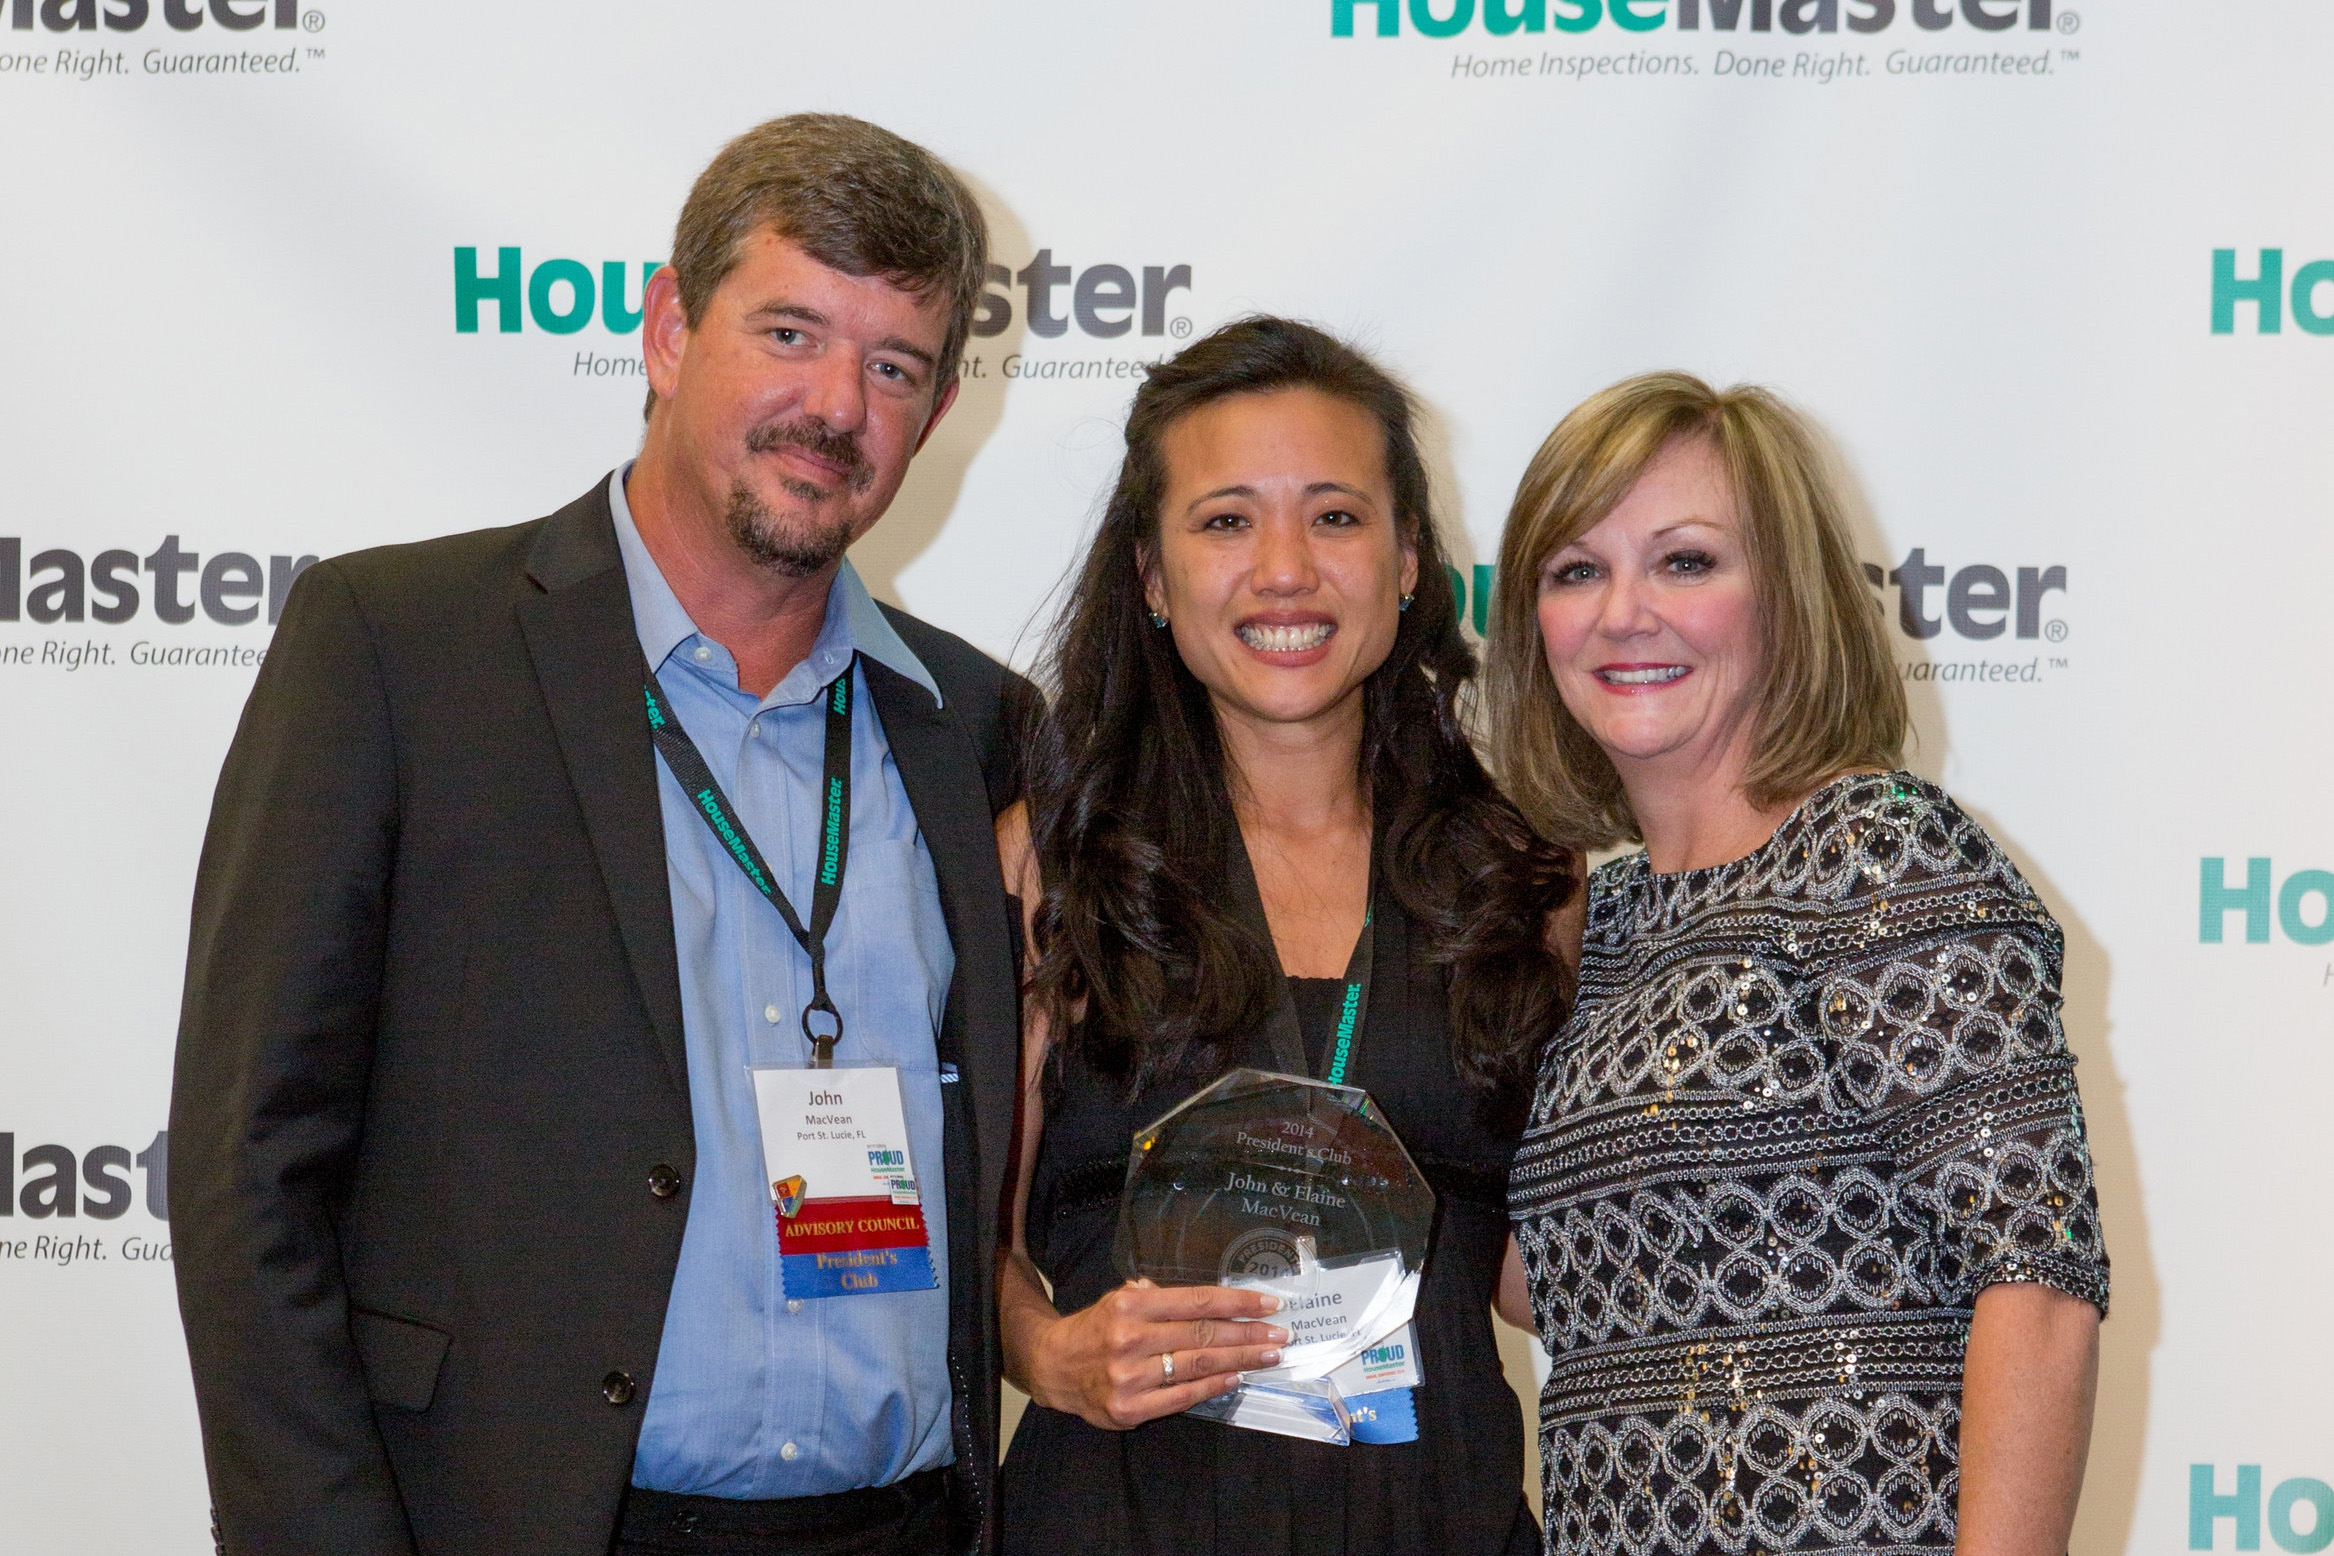 HouseMaster's Owner, John MacVean Awarded Affiliate of the Year by Palm Beach Gardens, Florida for 2015